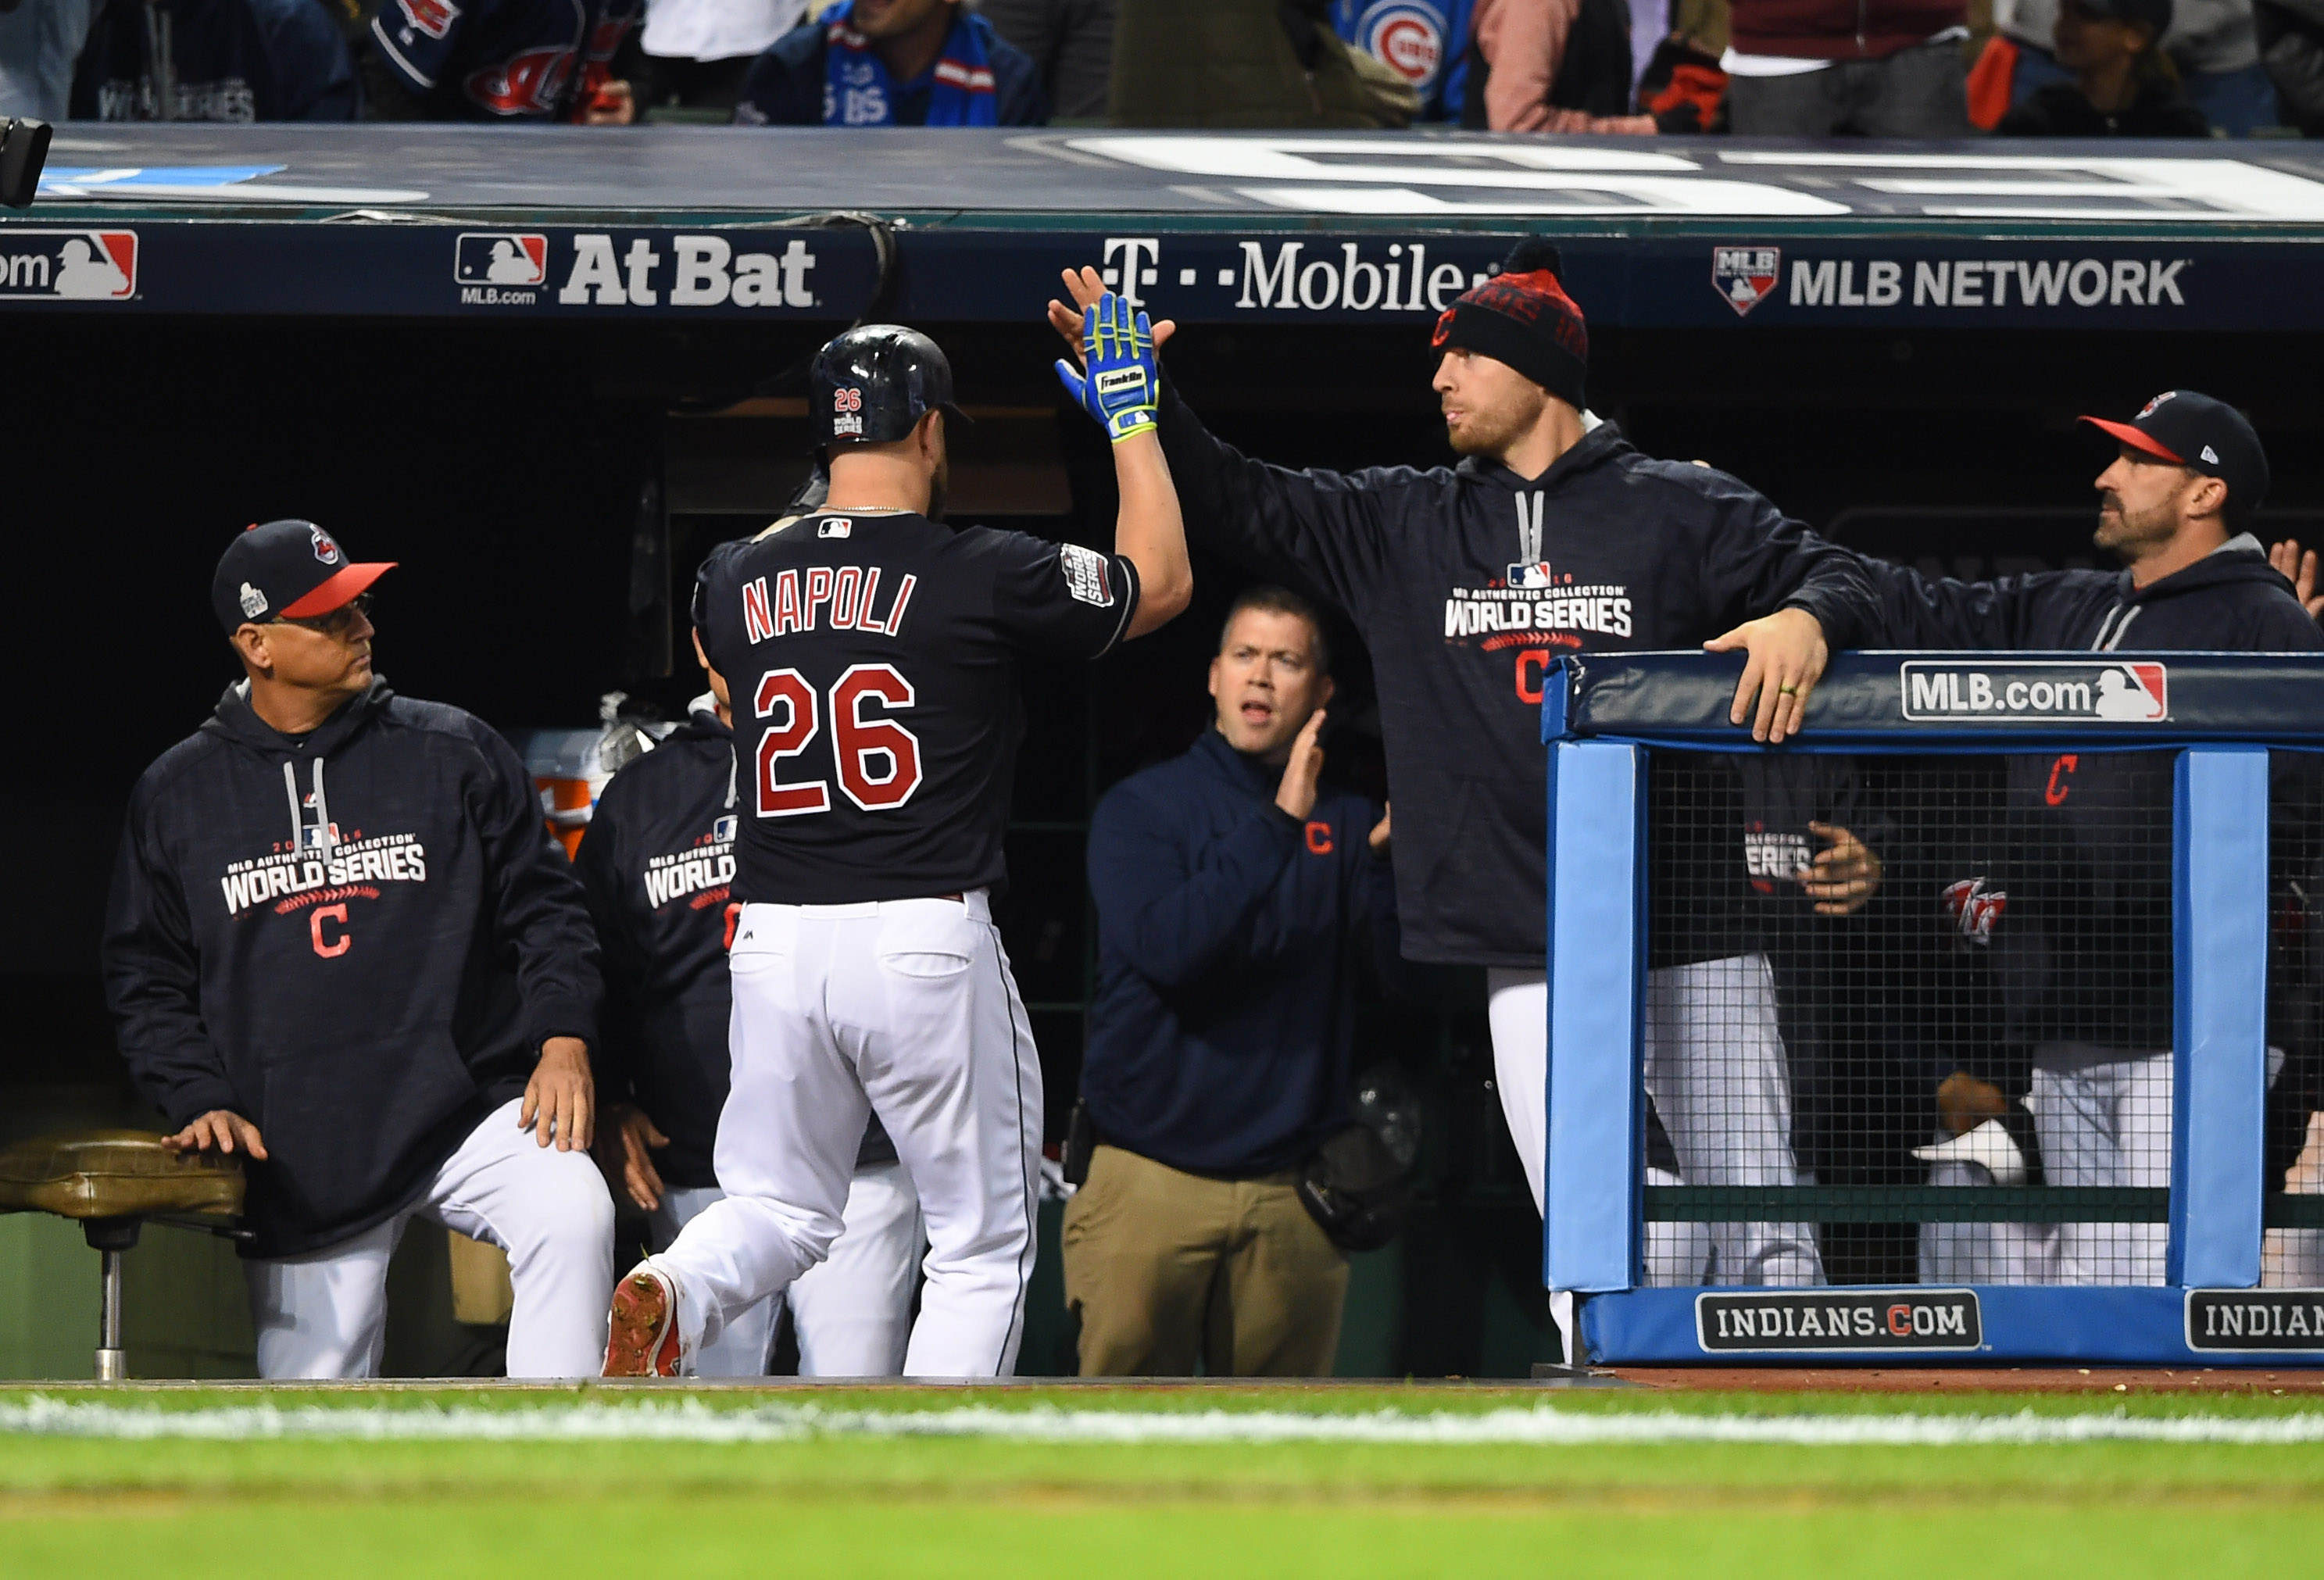 9632655-mlb-world-series-chicago-cubs-at-cleveland-indians